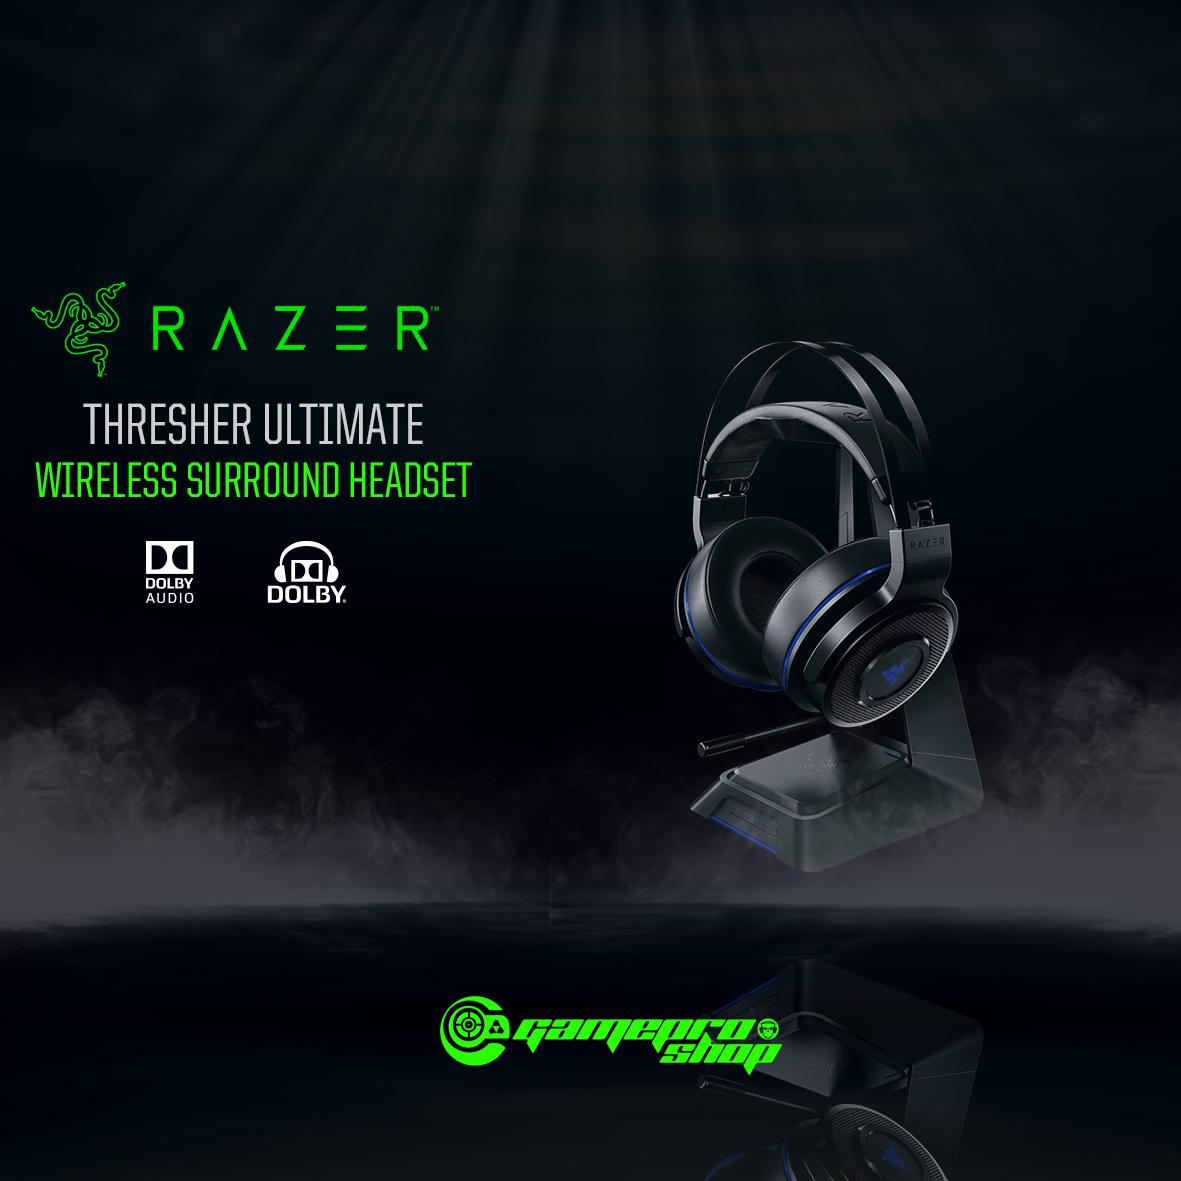 Compare Price Razer Thresher Ultimate Playstation 4 Ps4 Wireless Gaming Headset Gss Promo On Singapore